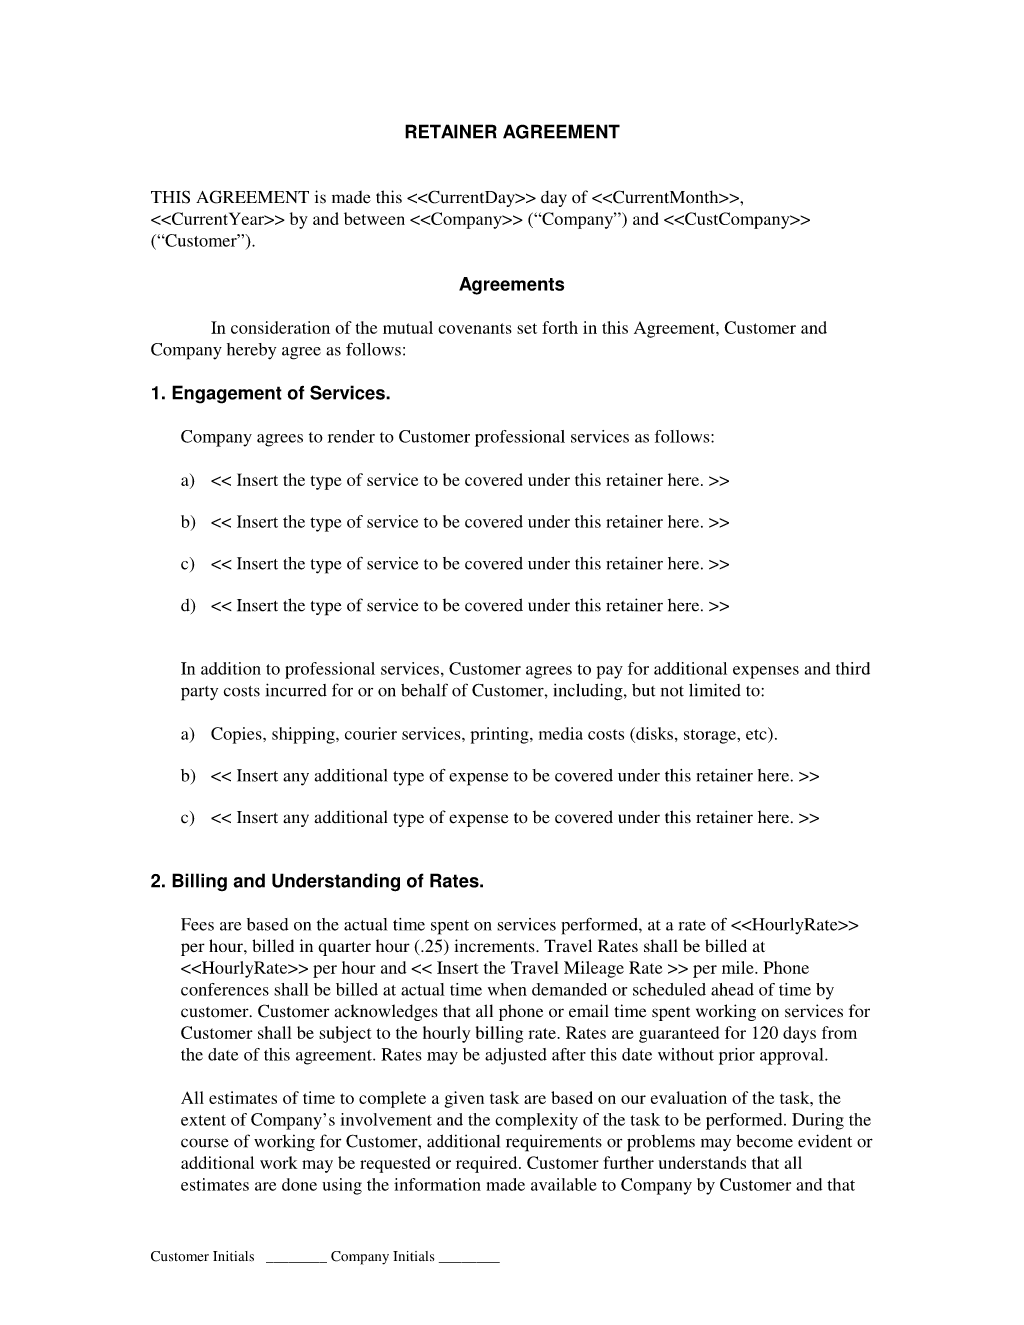 Retainer agreement sample template